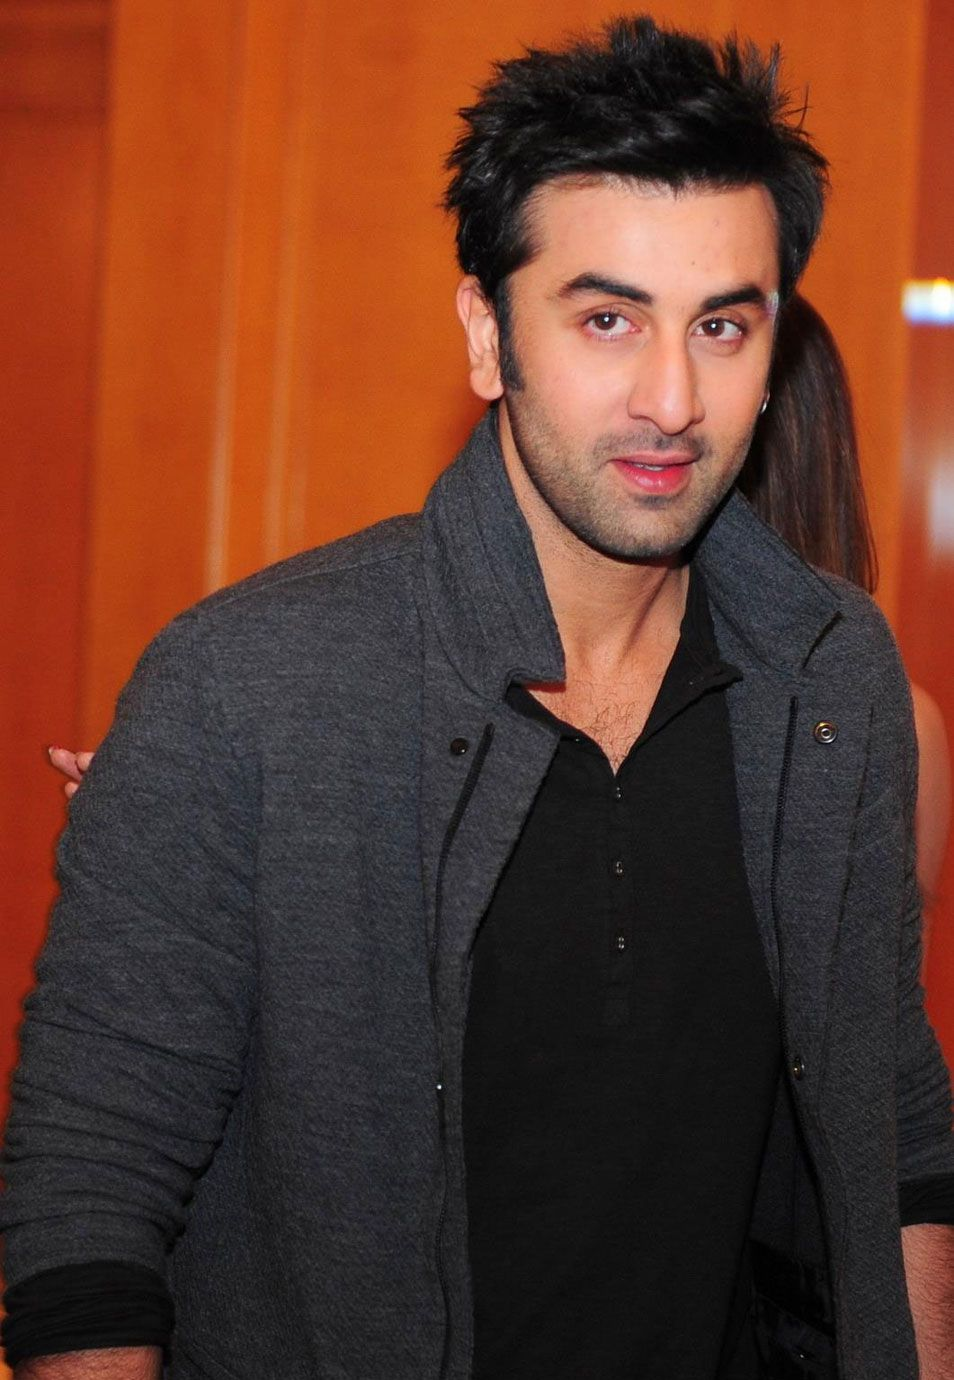 handsome ranbir kapoor new wallpapers images download ranbir kapoor bollywood celebrities bollywood actors handsome ranbir kapoor new wallpapers